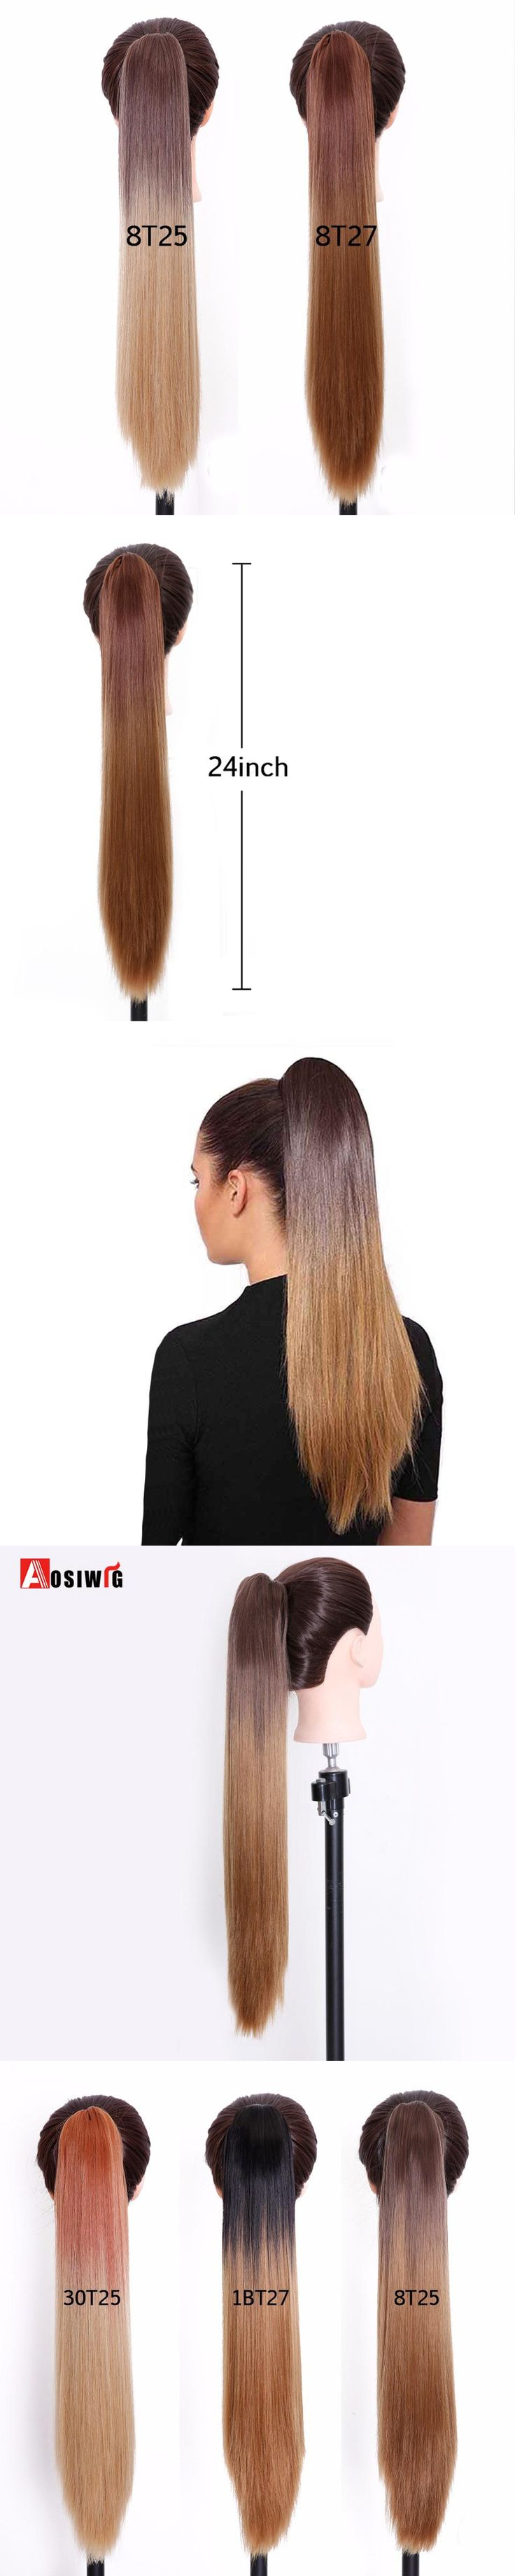 """AOSIWIG 24"""" Synthetic Long Straight Claw Ponytail Hair Extension High Temperature Fiber Hair Pieces Style Fake Ponytail"""